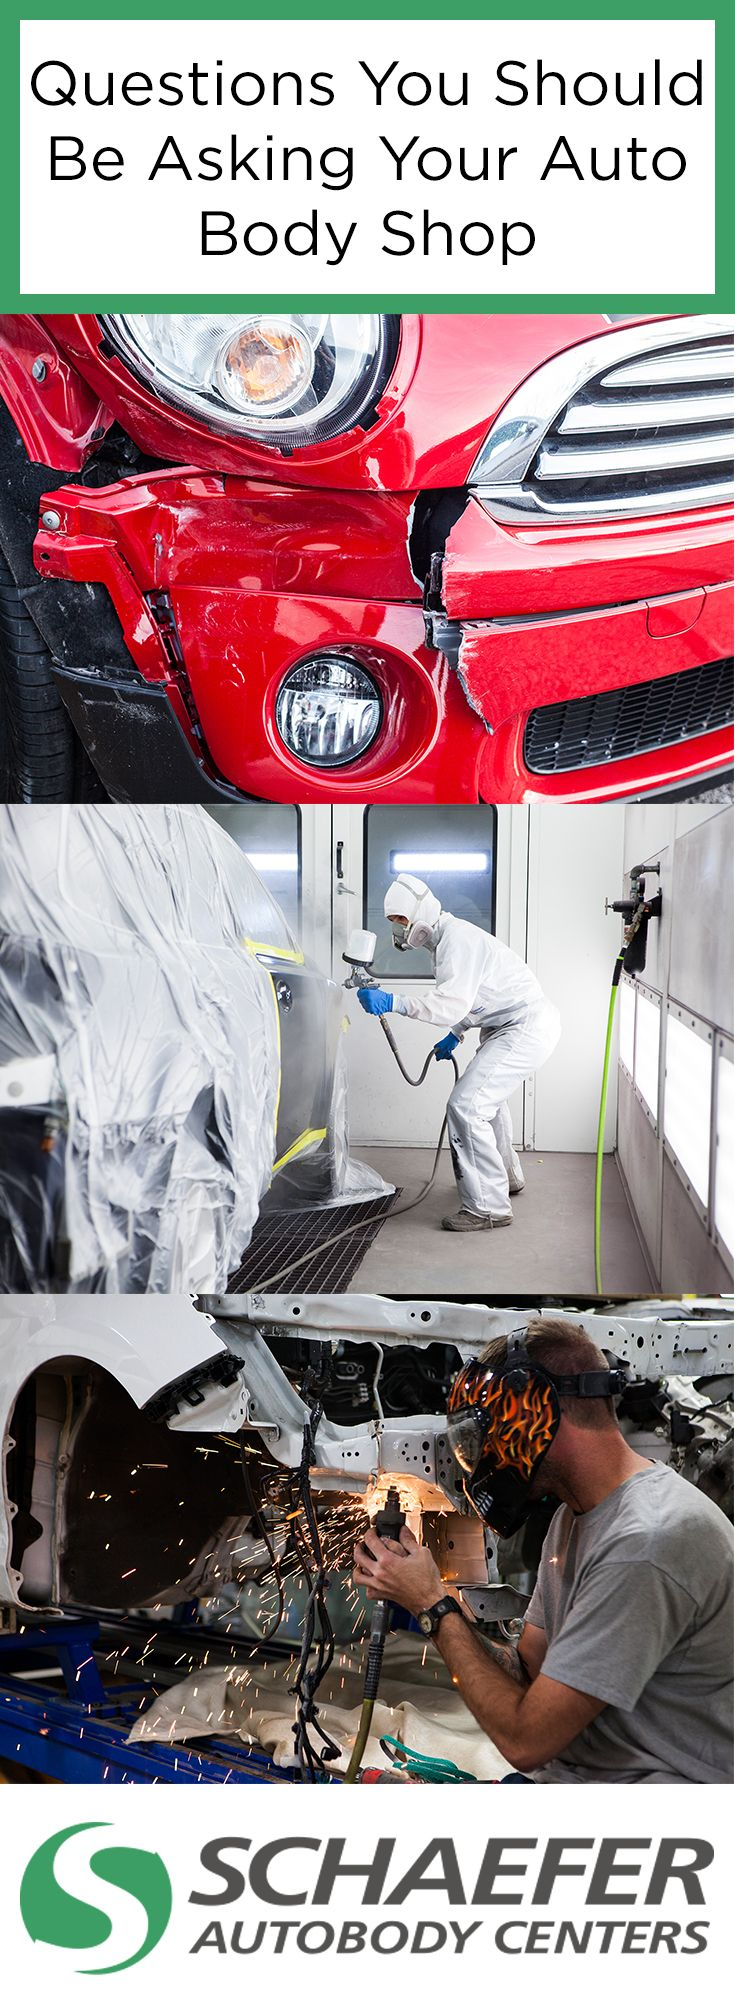 There are a lot of important questions that need answered in the auto body repair process